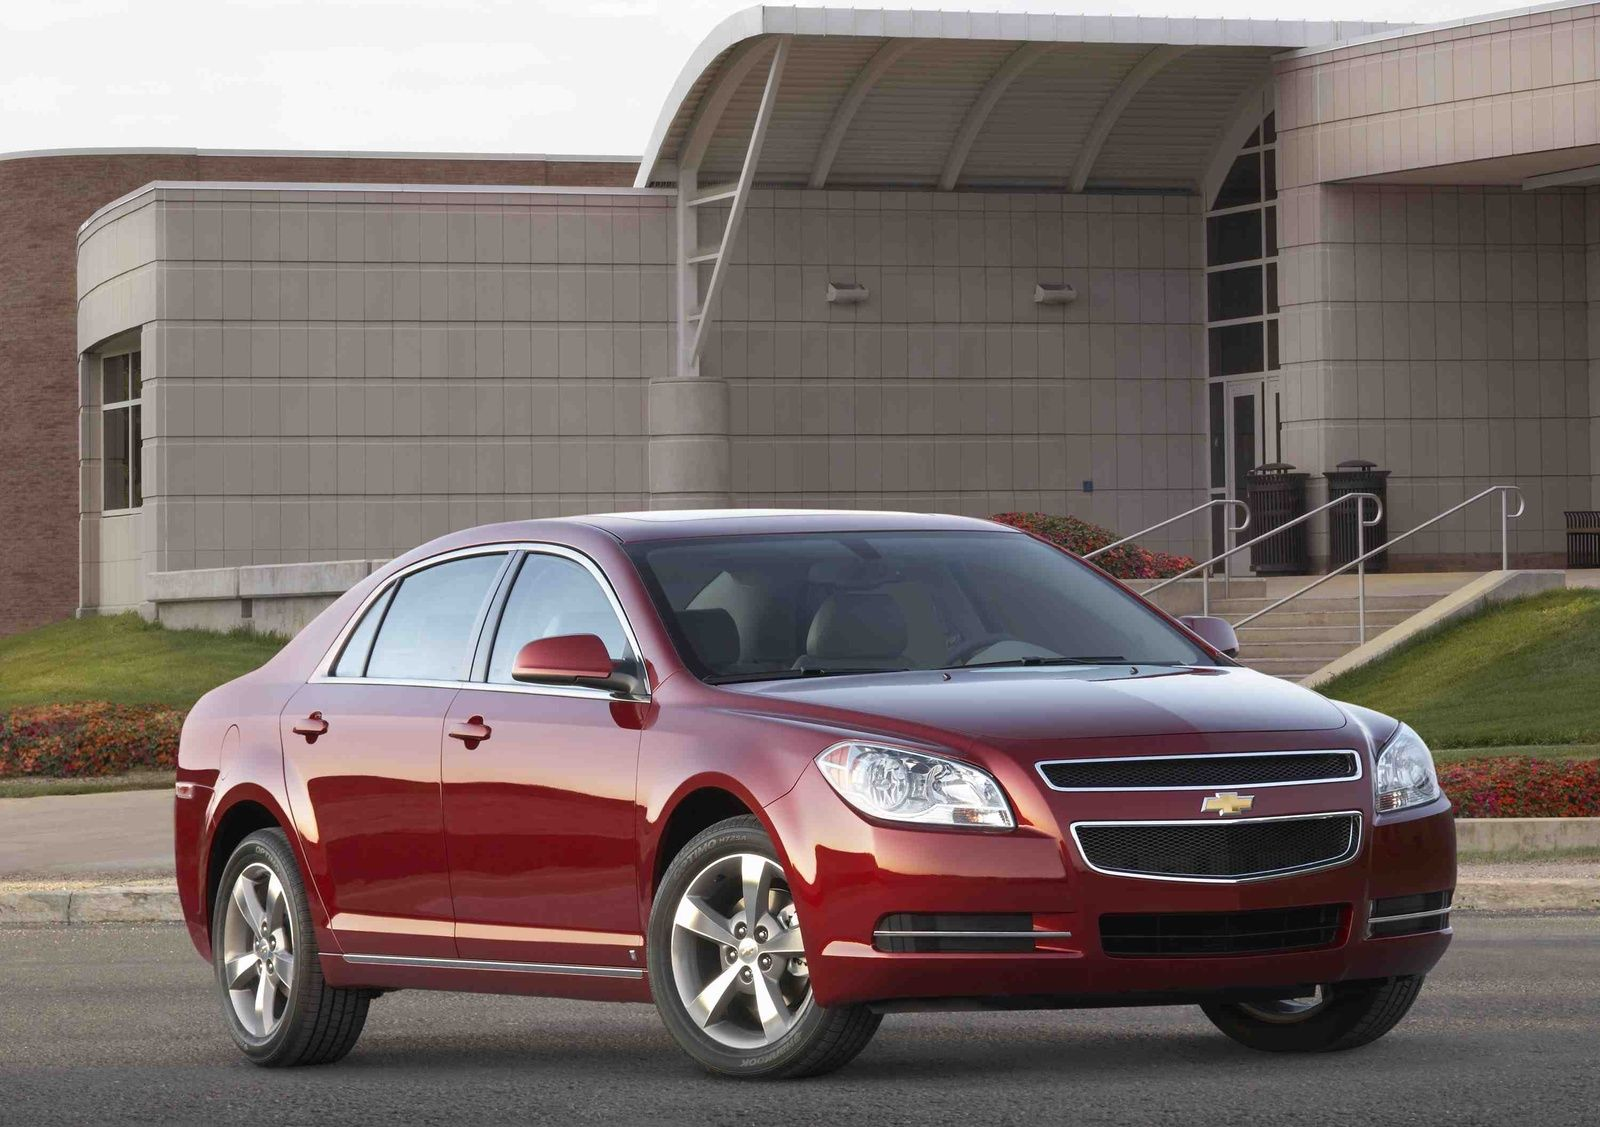 Chevy Malibu 2010 My Sis Just Got This Makes Me Want One